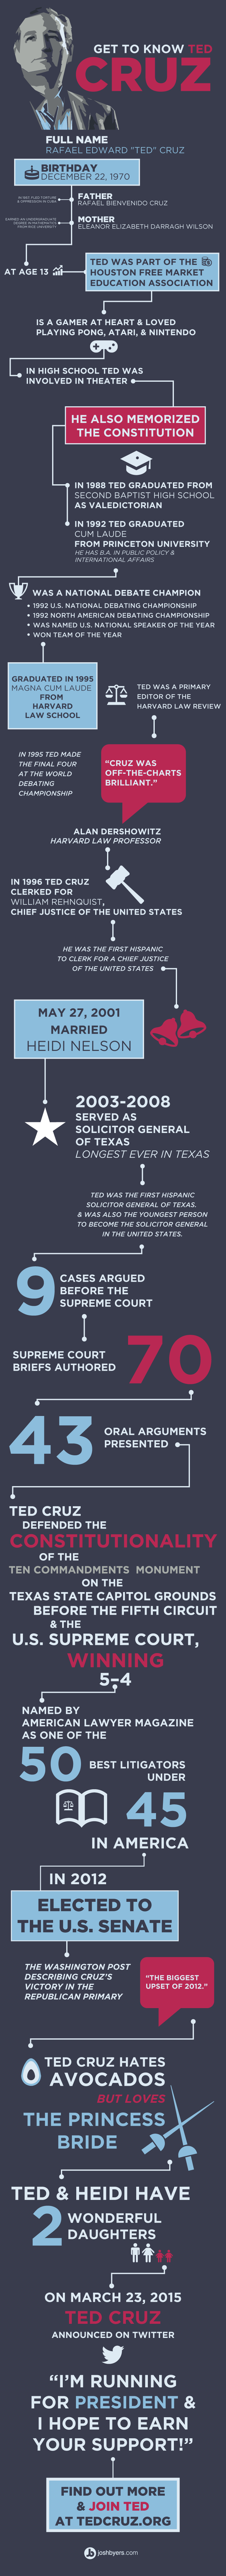 who-is-ted-cruz-infographic